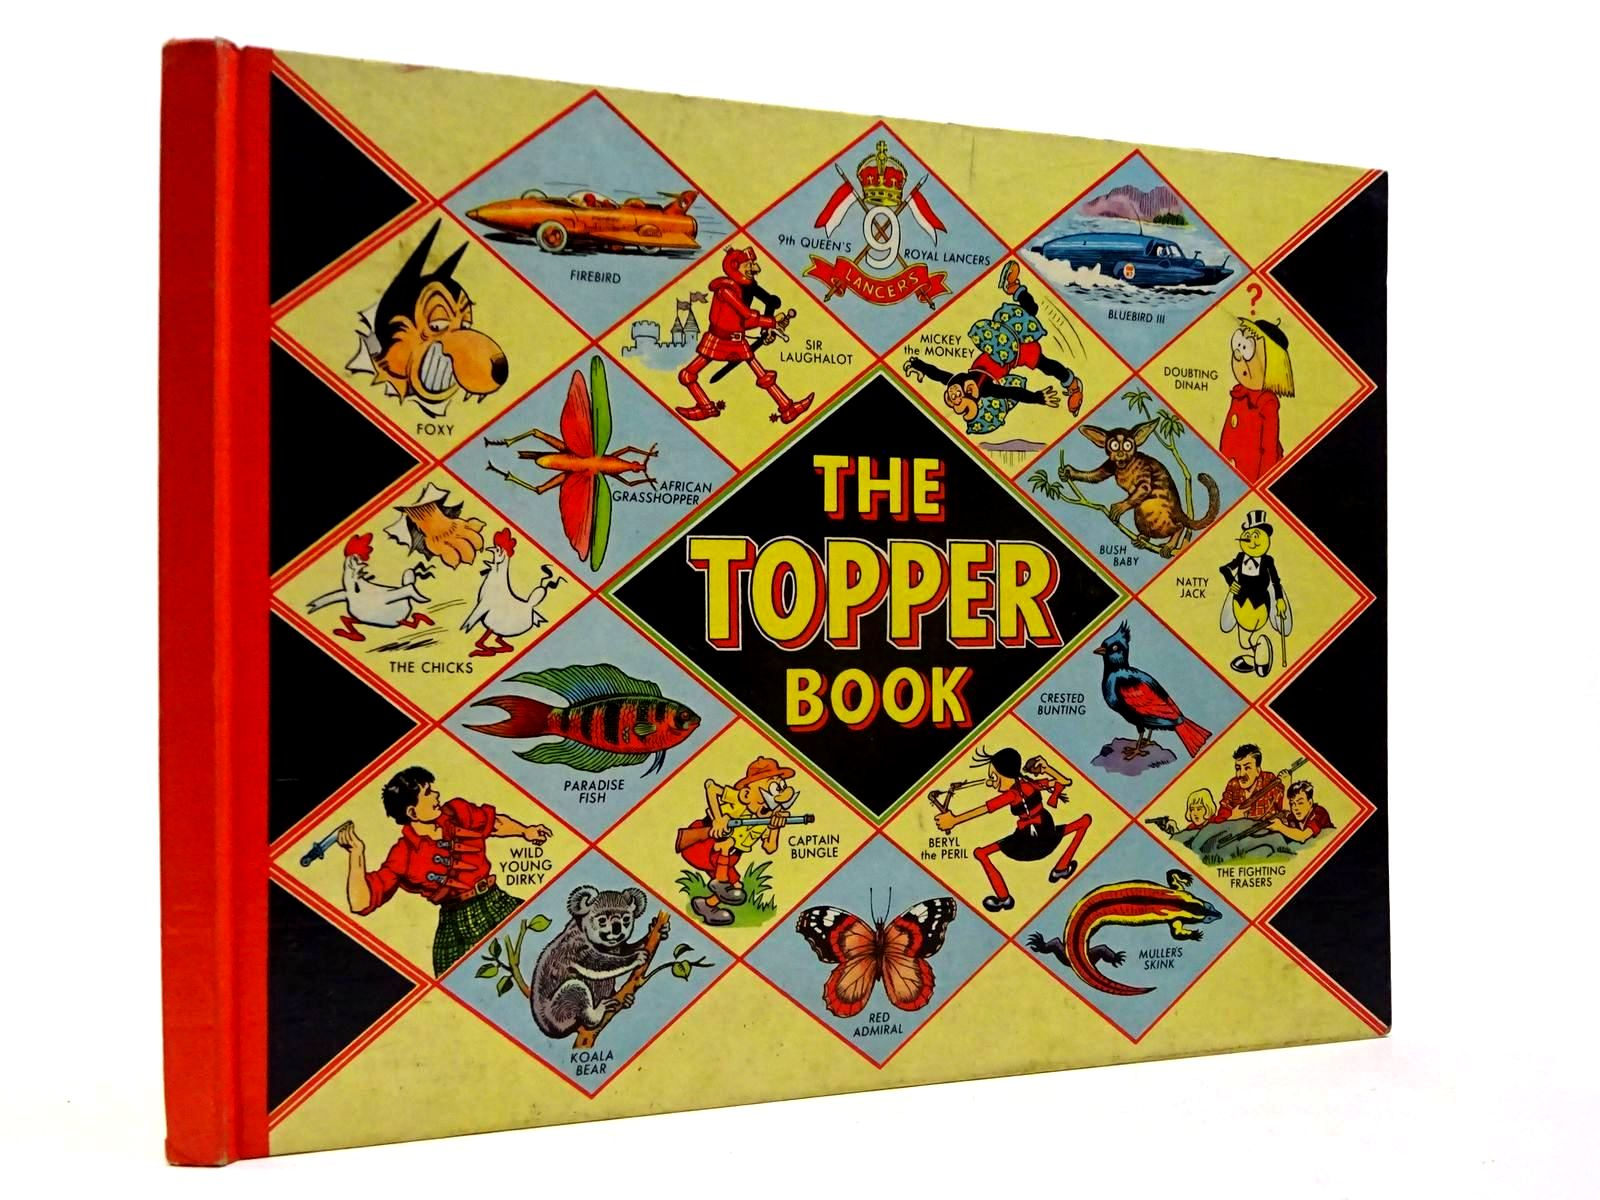 Photo of THE TOPPER BOOK 1958 published by D.C. Thomson & Co Ltd., John Leng (STOCK CODE: 2130220)  for sale by Stella & Rose's Books